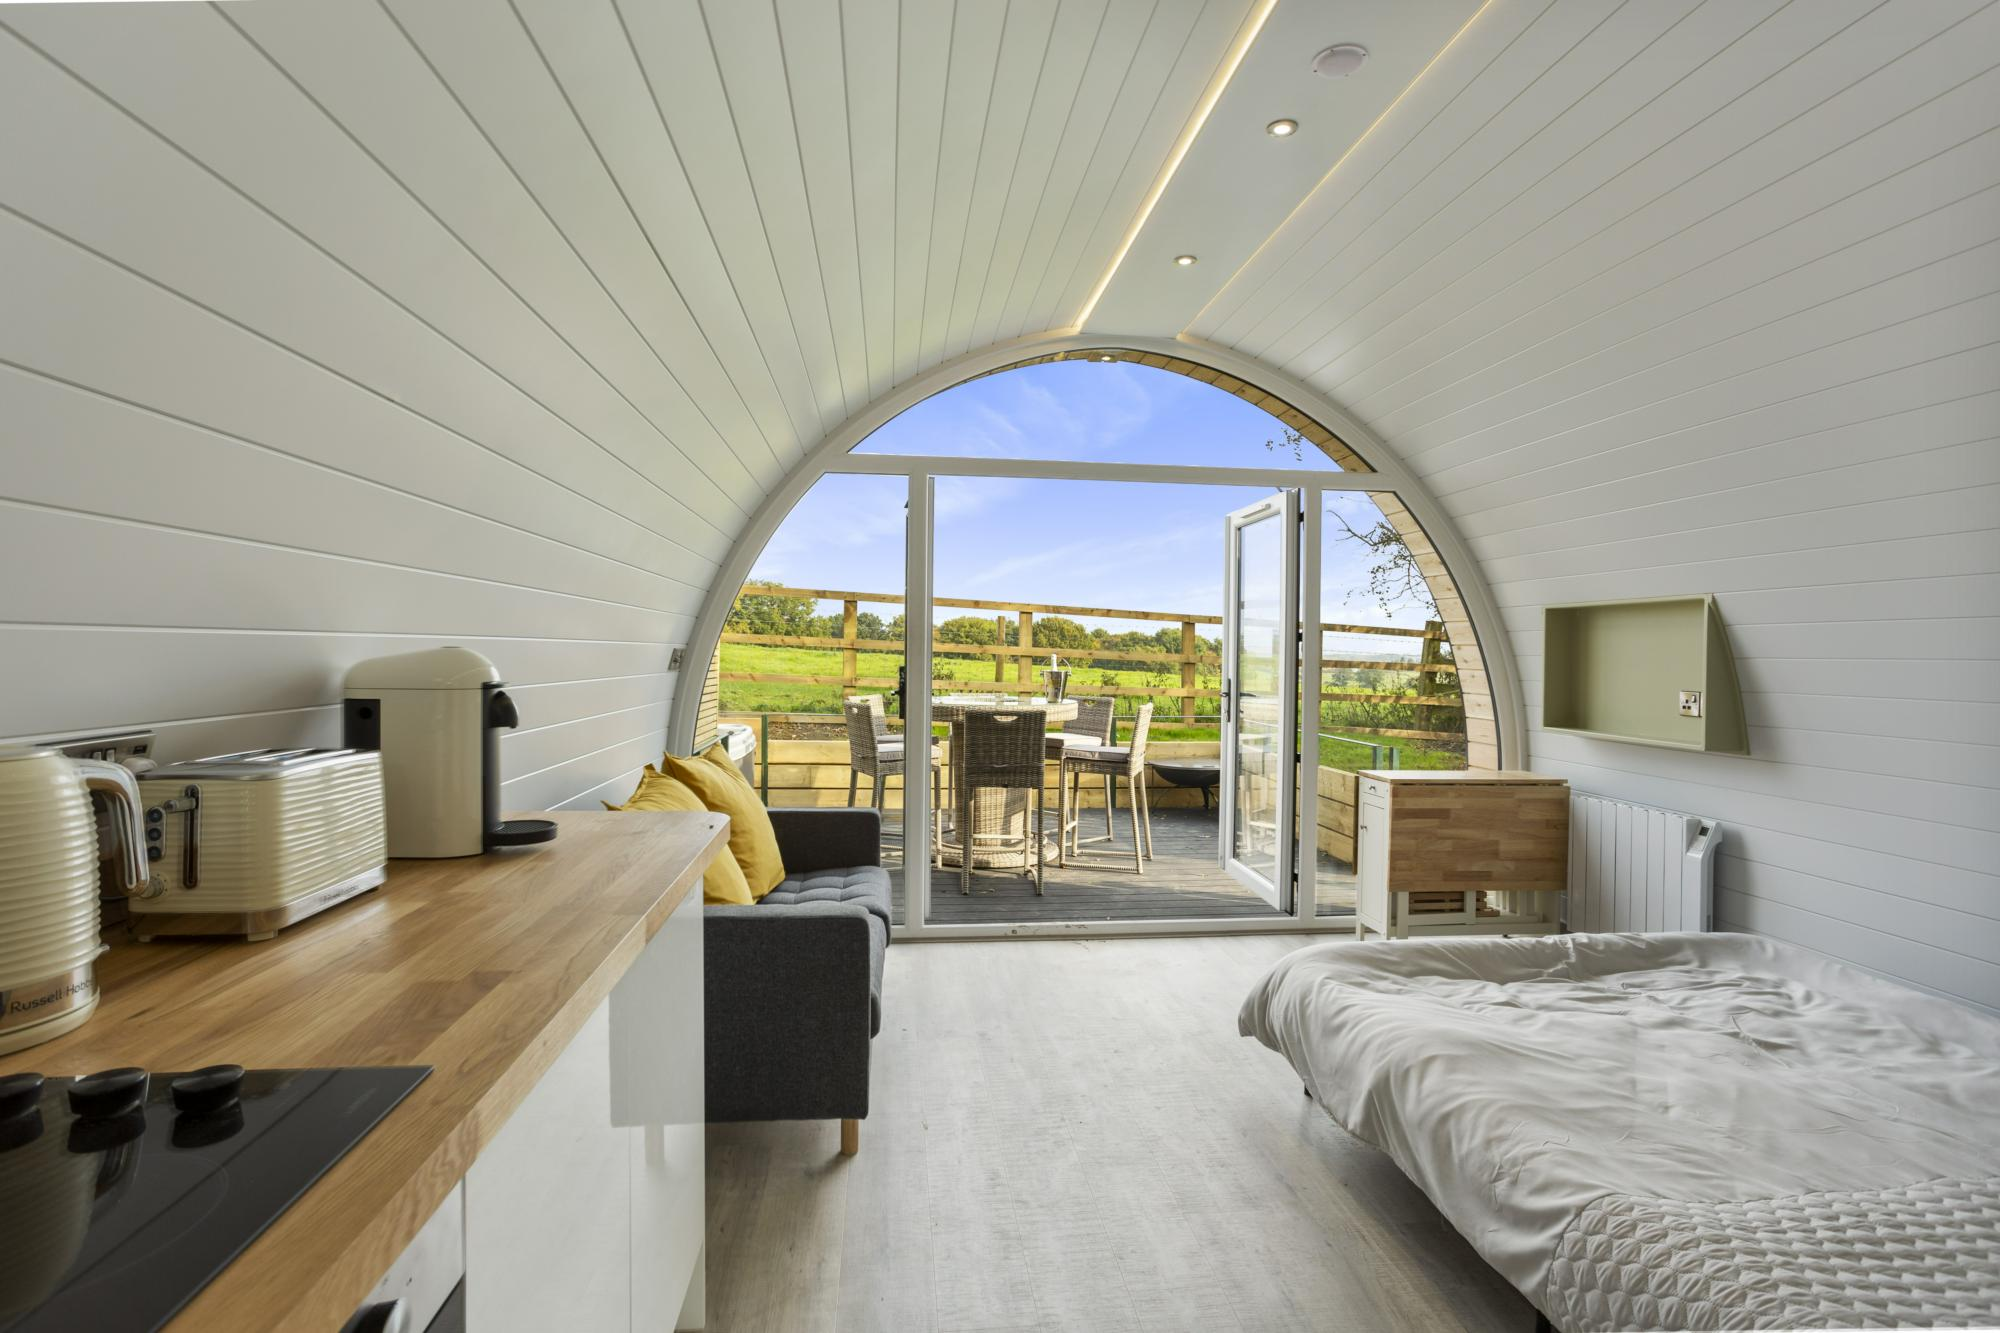 Glamping in Derbyshire holidays at Cool Places